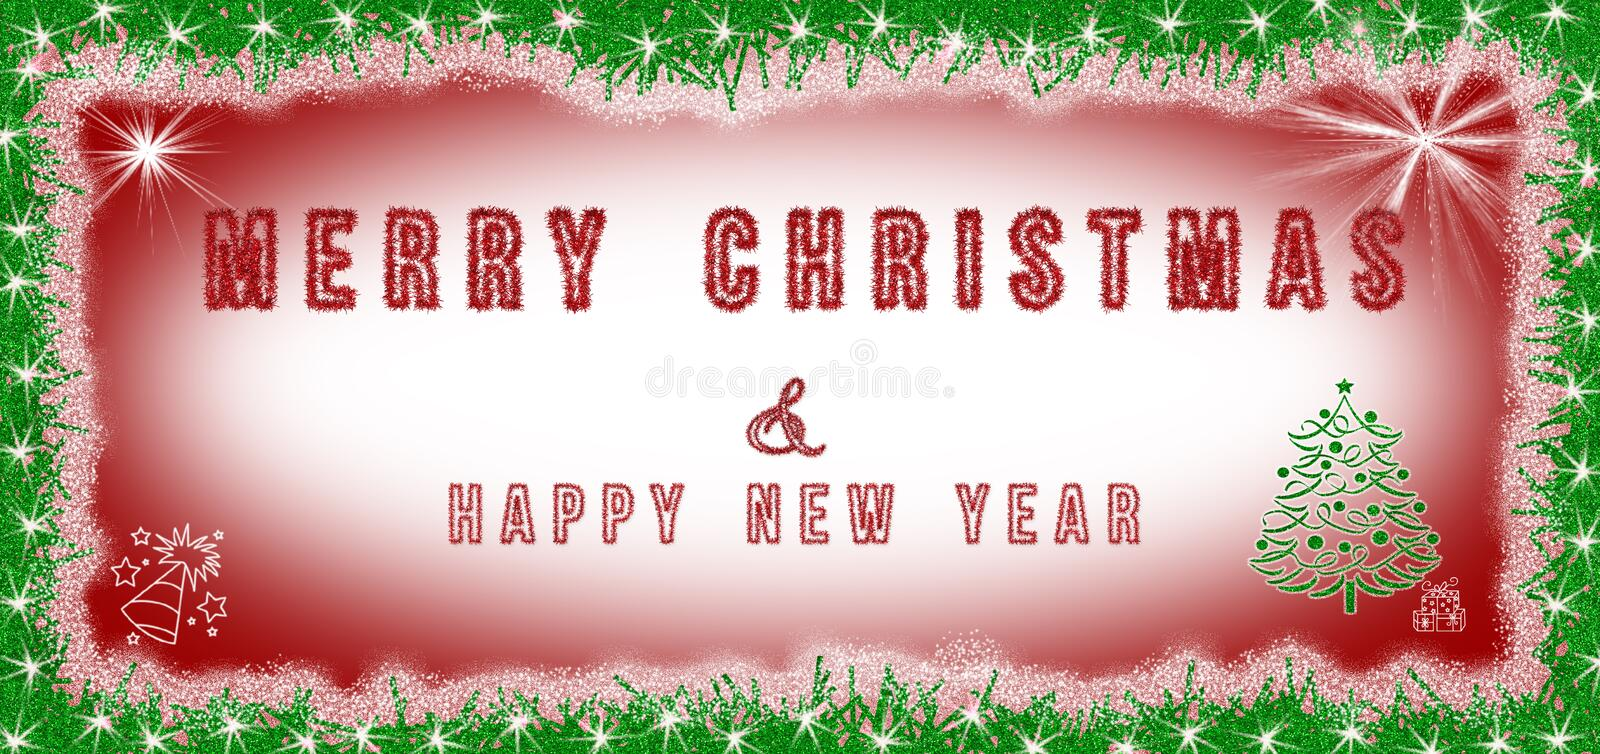 Merry Christmas & Happy New Year Text Written On Red And ...